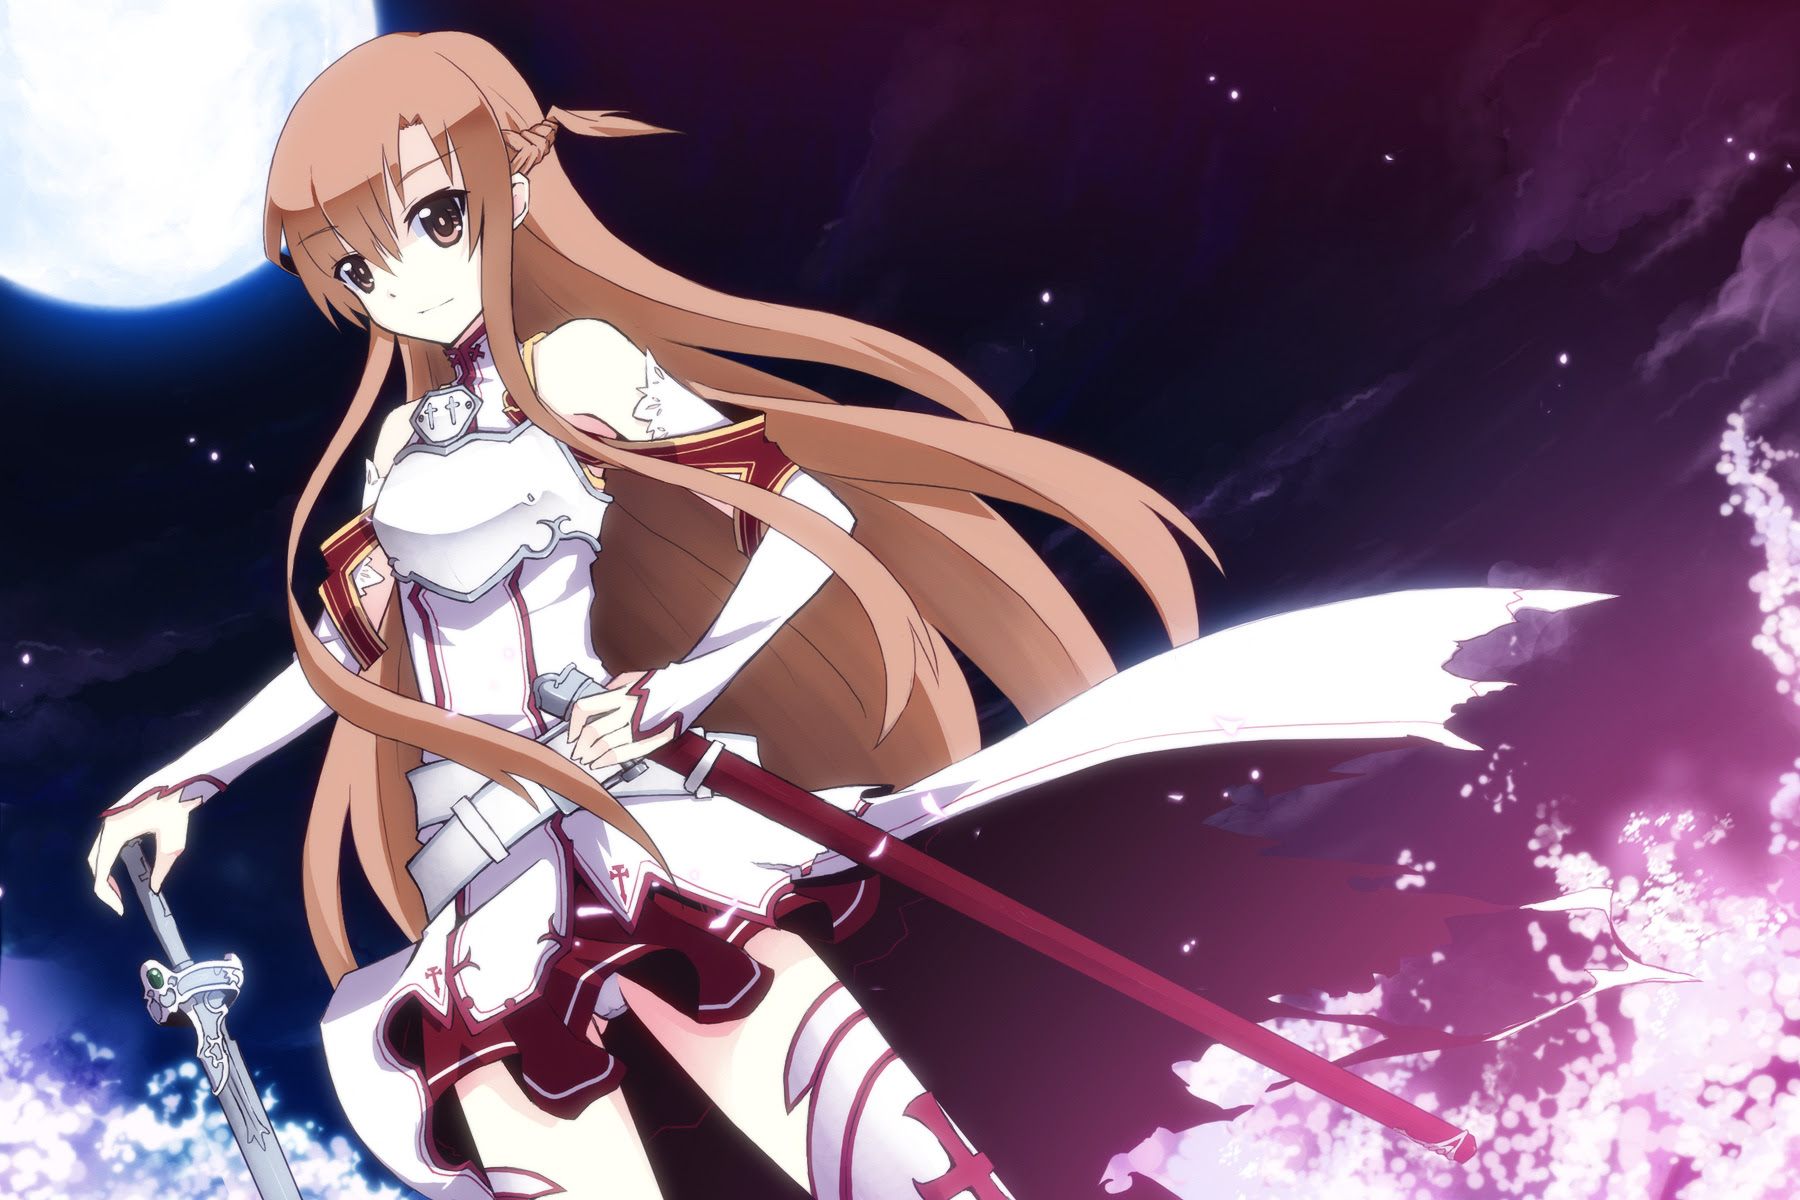 konachan 142775 brown_eyes brown_hair long_hair sword sword_art_online uiu weapon yuuki_asuna.jpg